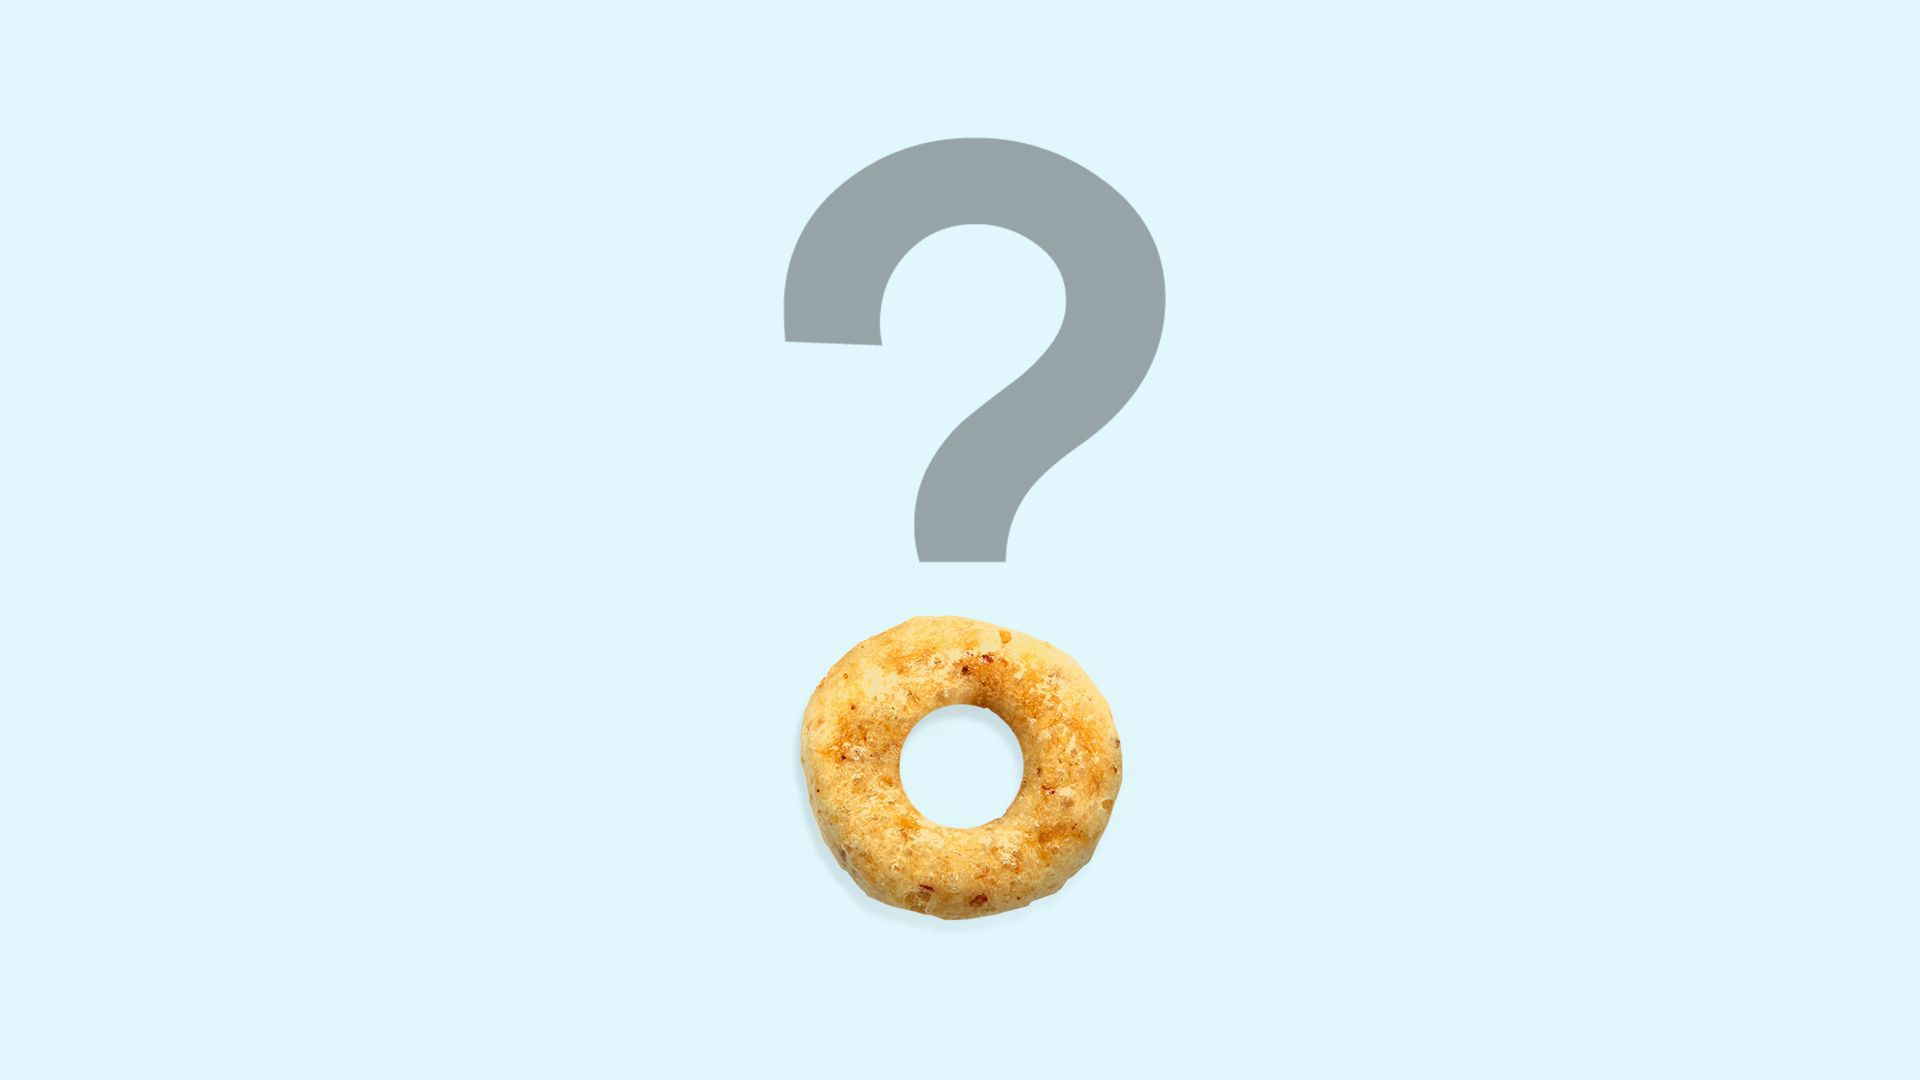 Photo illustration of a question mark with a cheerio instead of a dot at the end